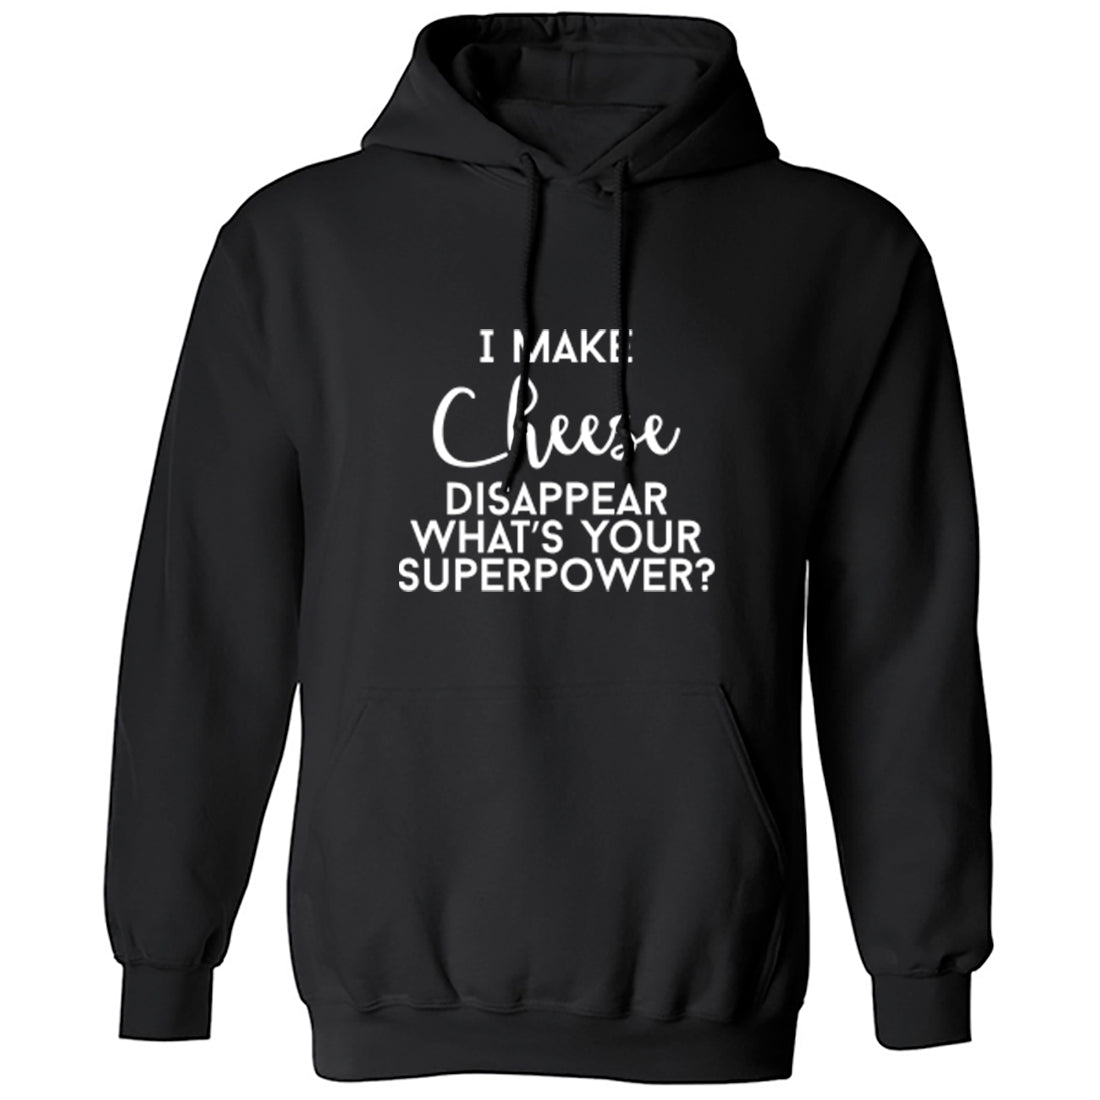 I Make Cheese Disappear What's Your Superpower? Unisex Hoodie K1599 - Illustrated Identity Ltd.